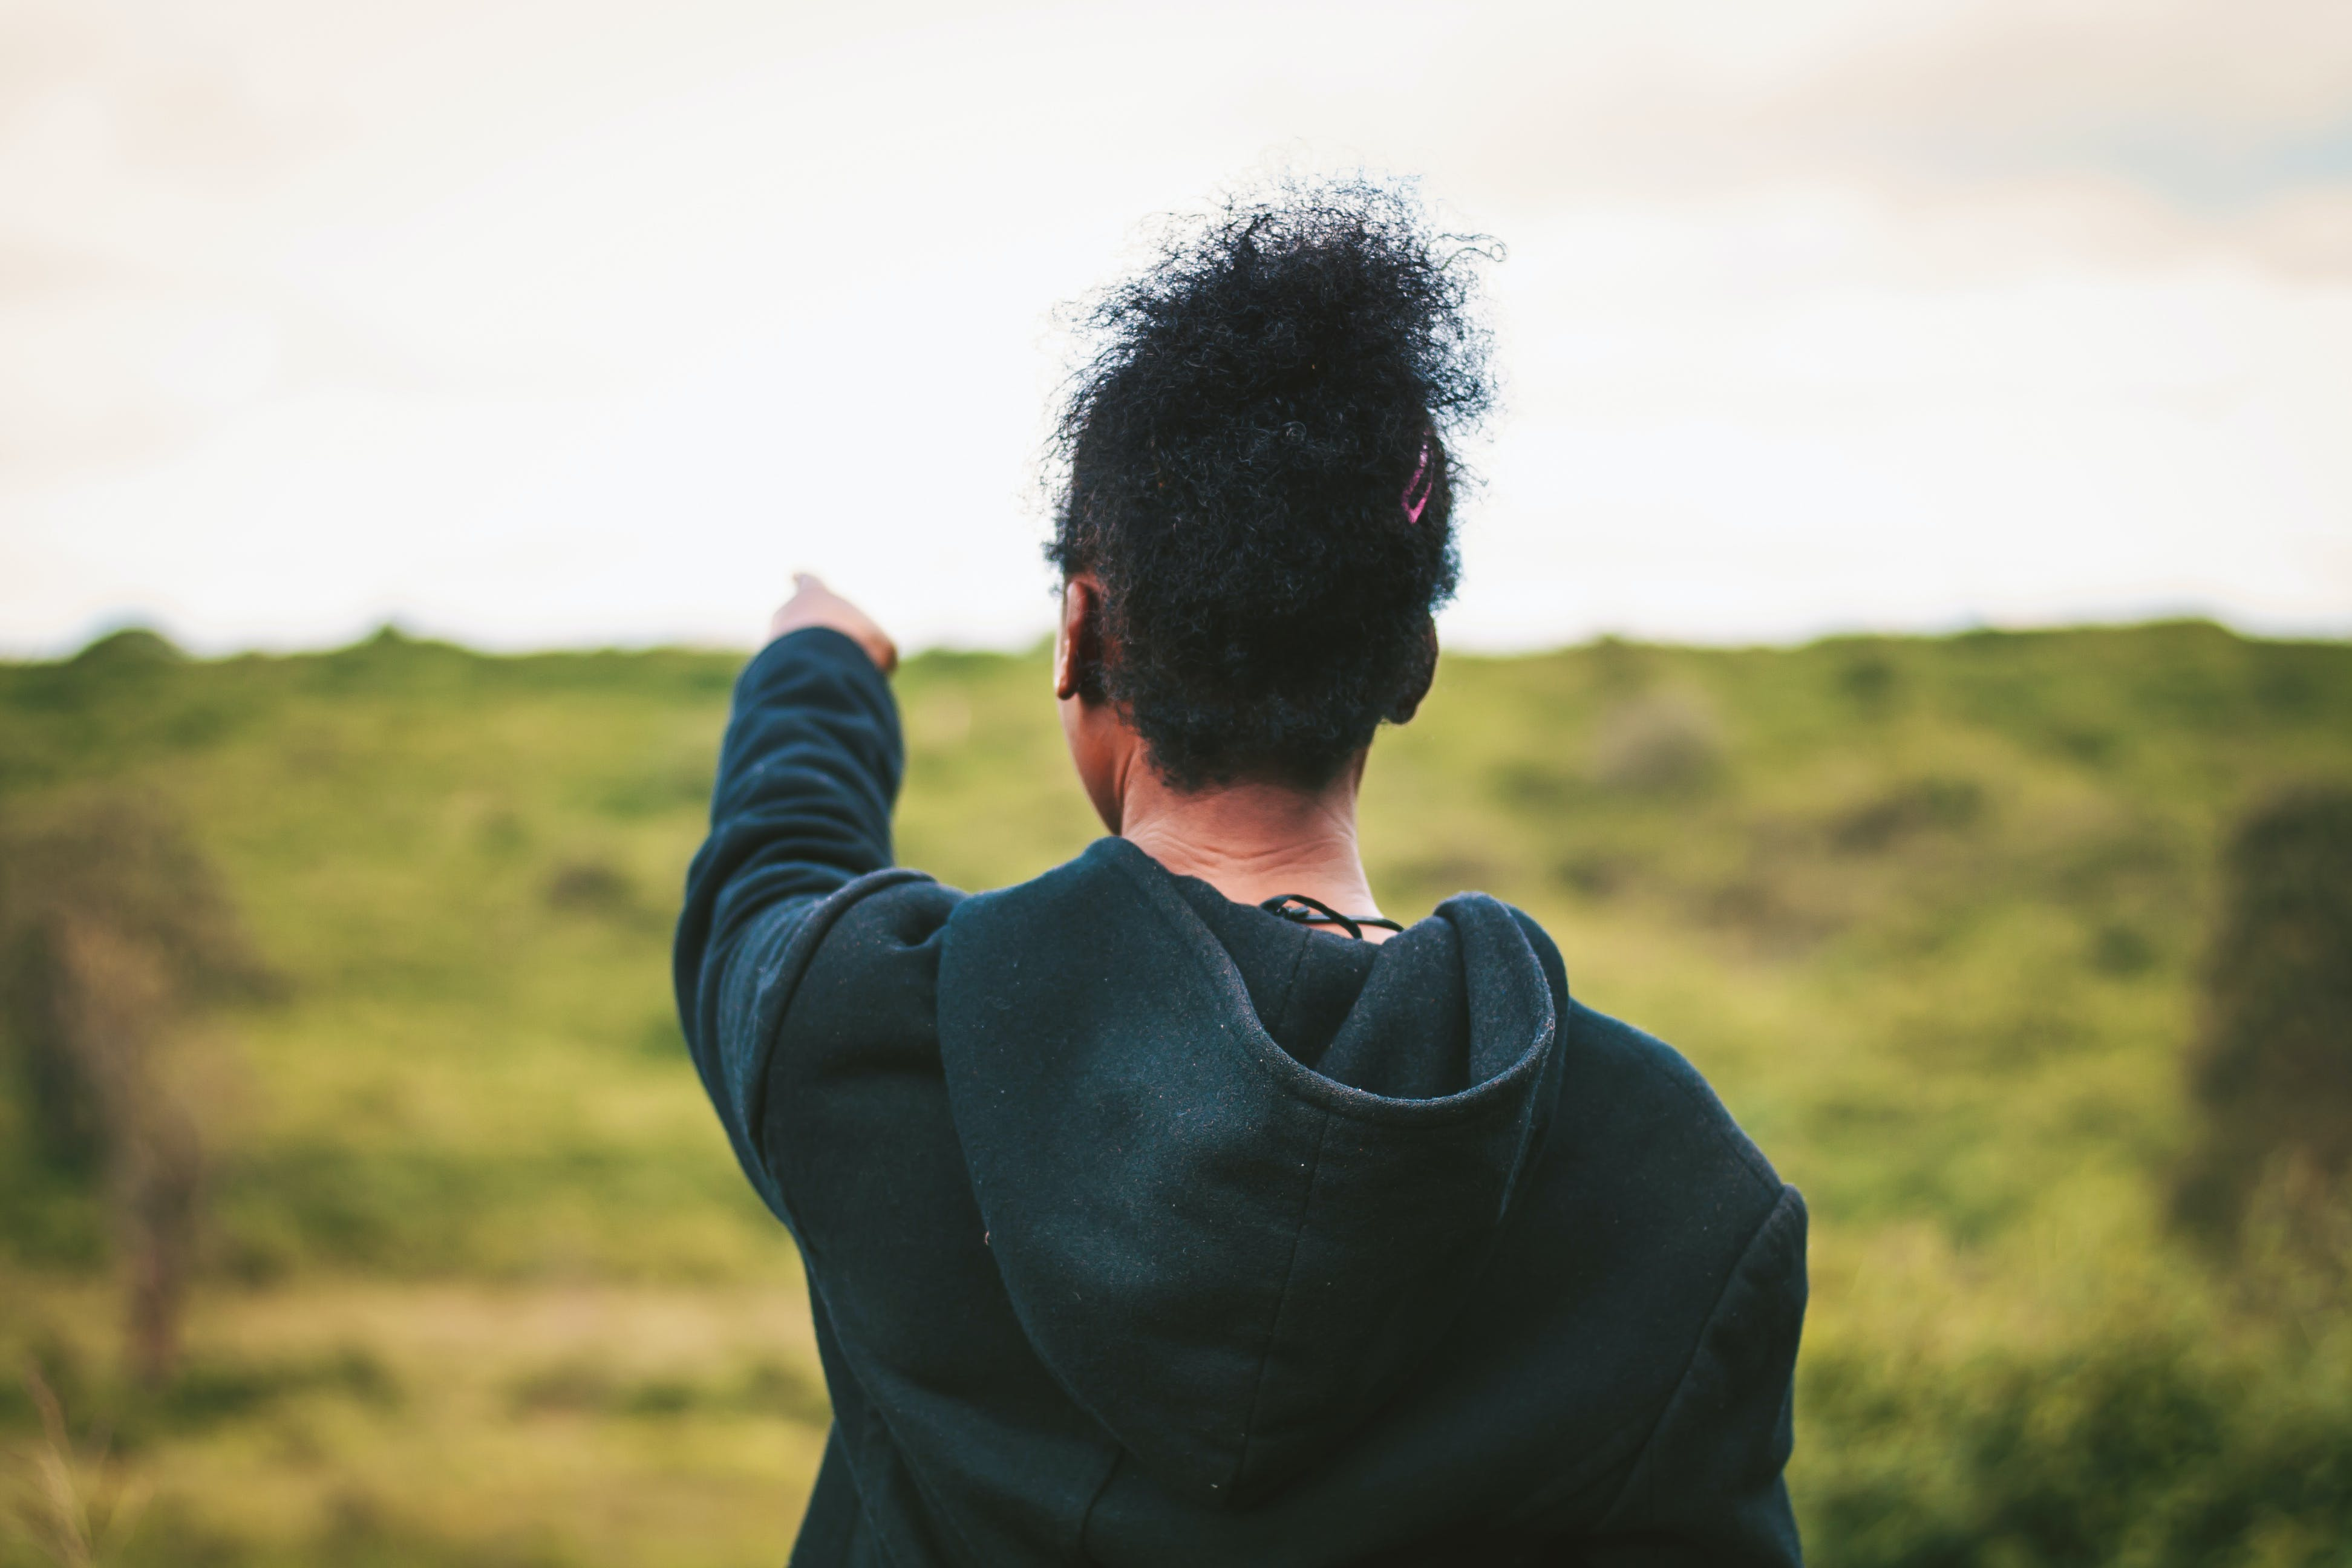 Man Pointing on Grass Field